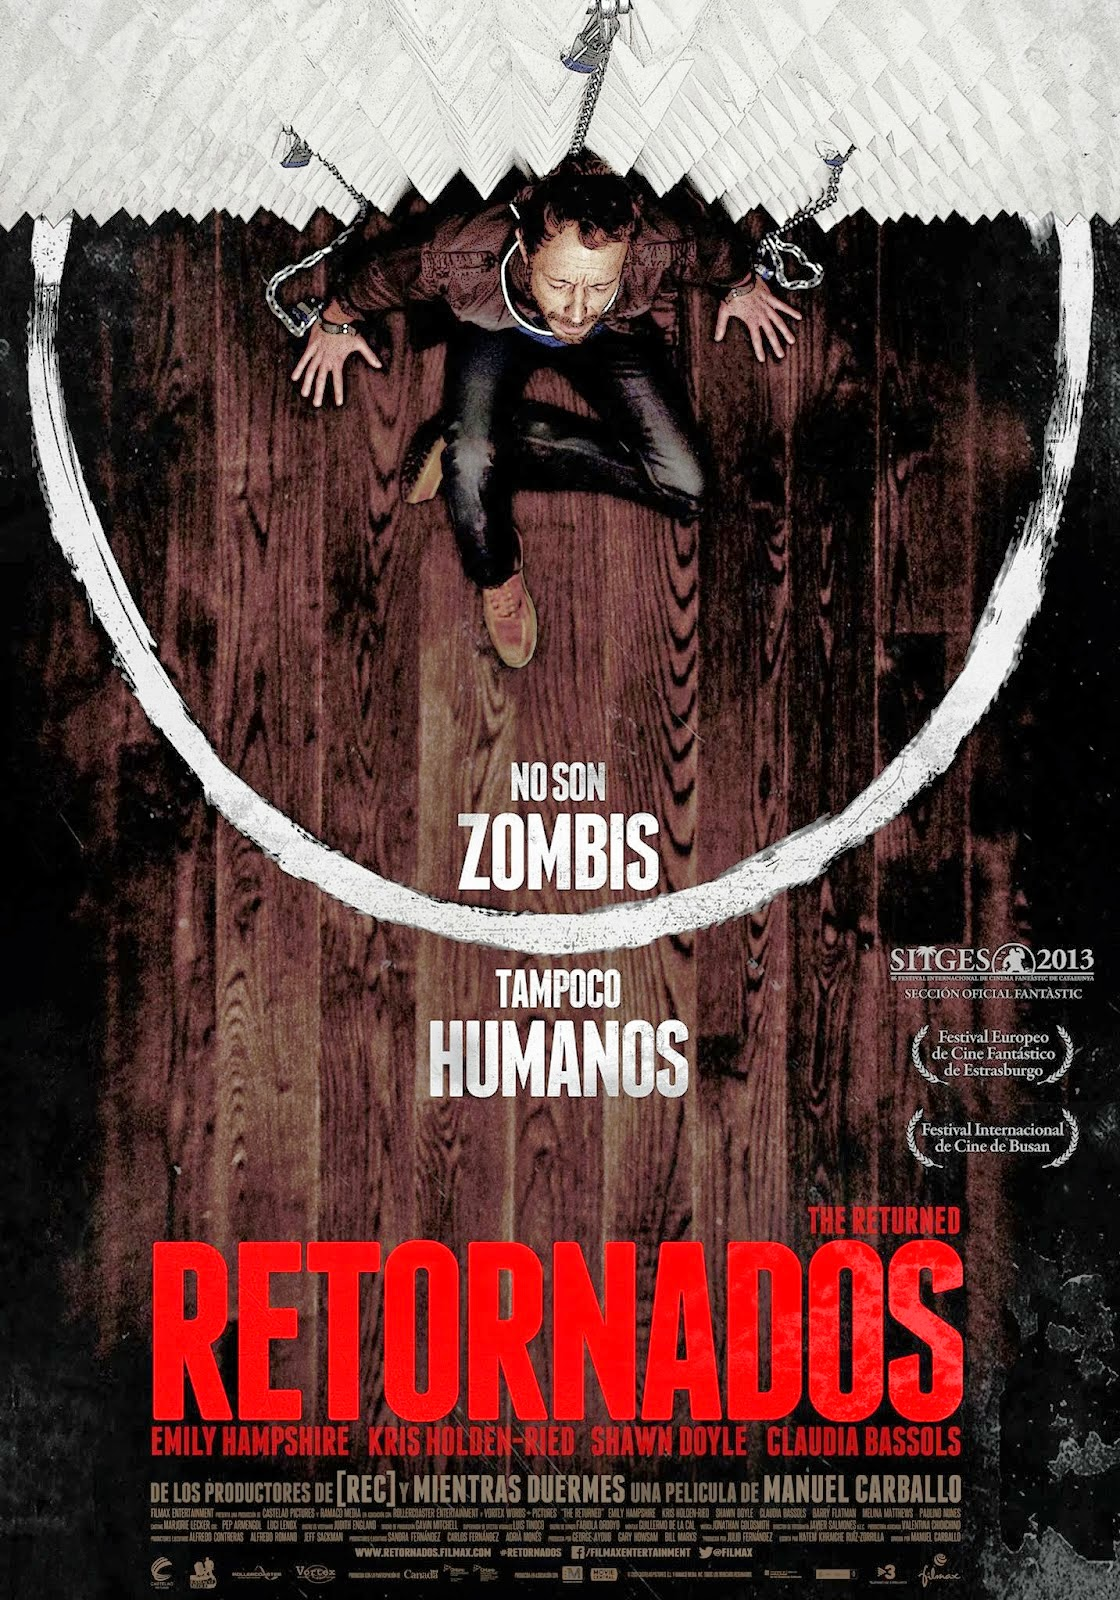 Retornados (The Returned) zombie movie